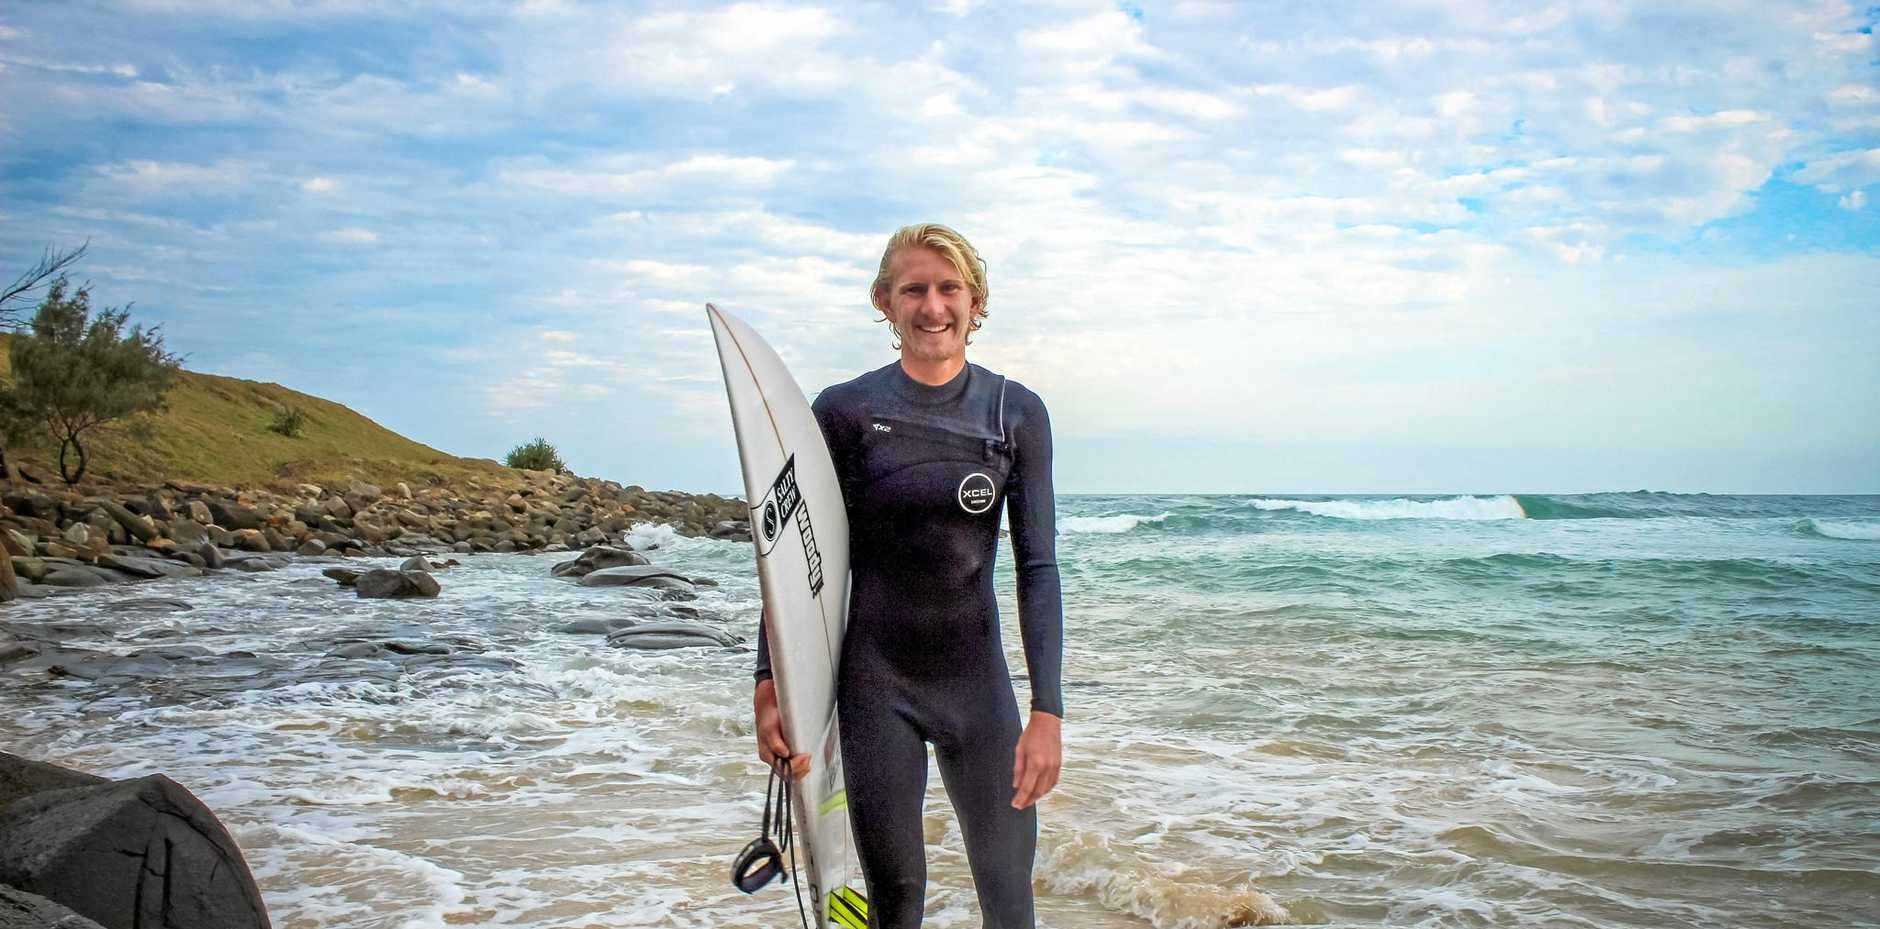 POST-SURF: Angourie's Chris Zaffis has finished second in the final of the Open Mens division in the Australian Festival of Surf.